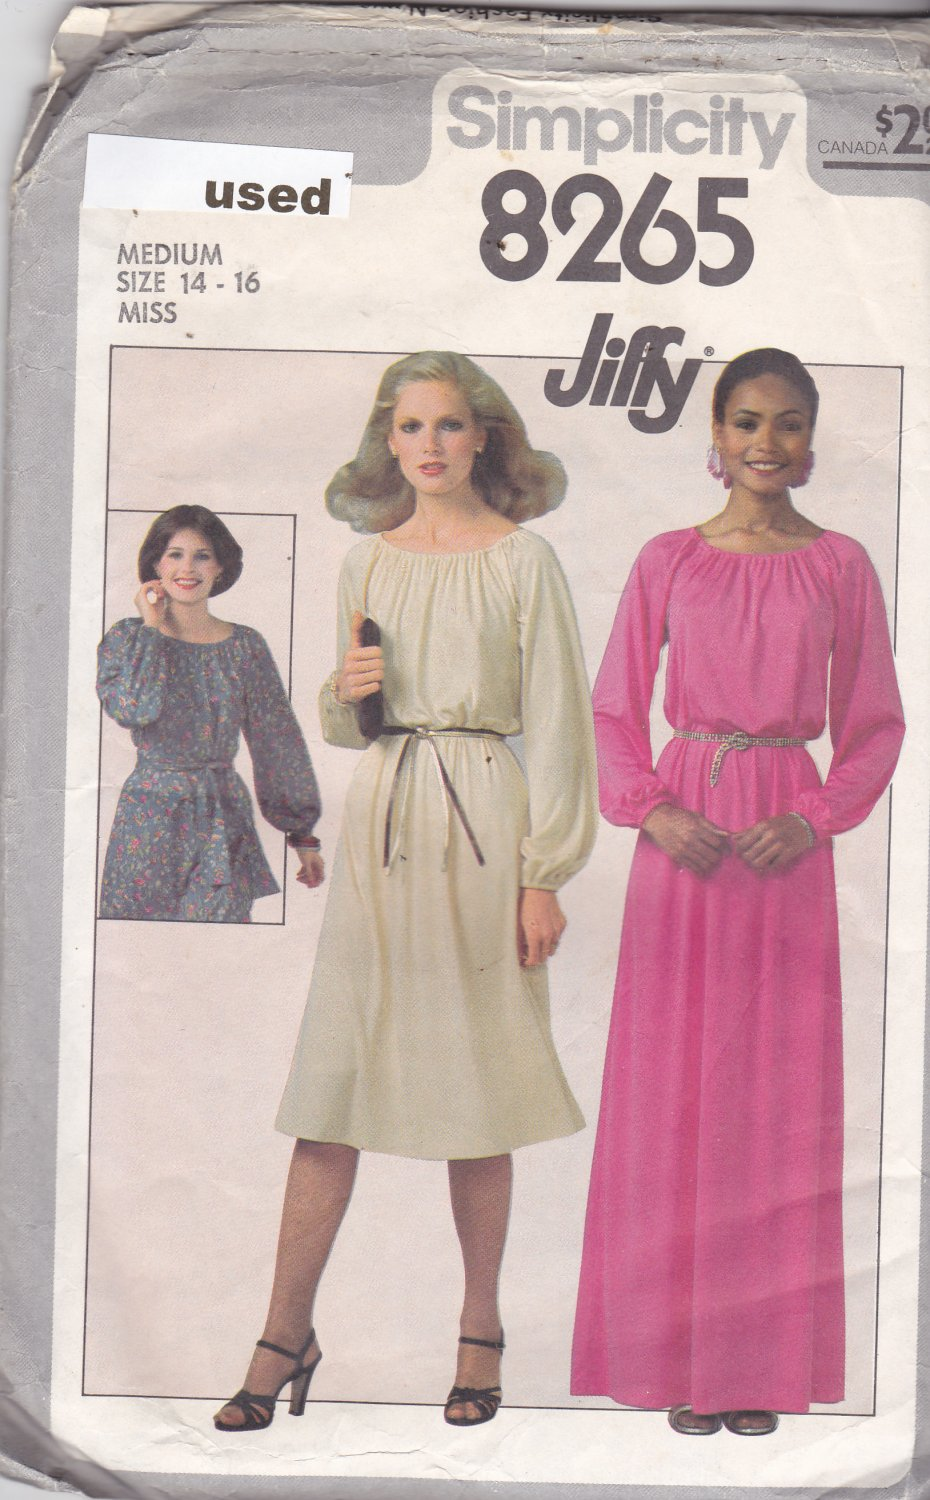 simplicity 8265 size medium 14 16, may be missing pieces